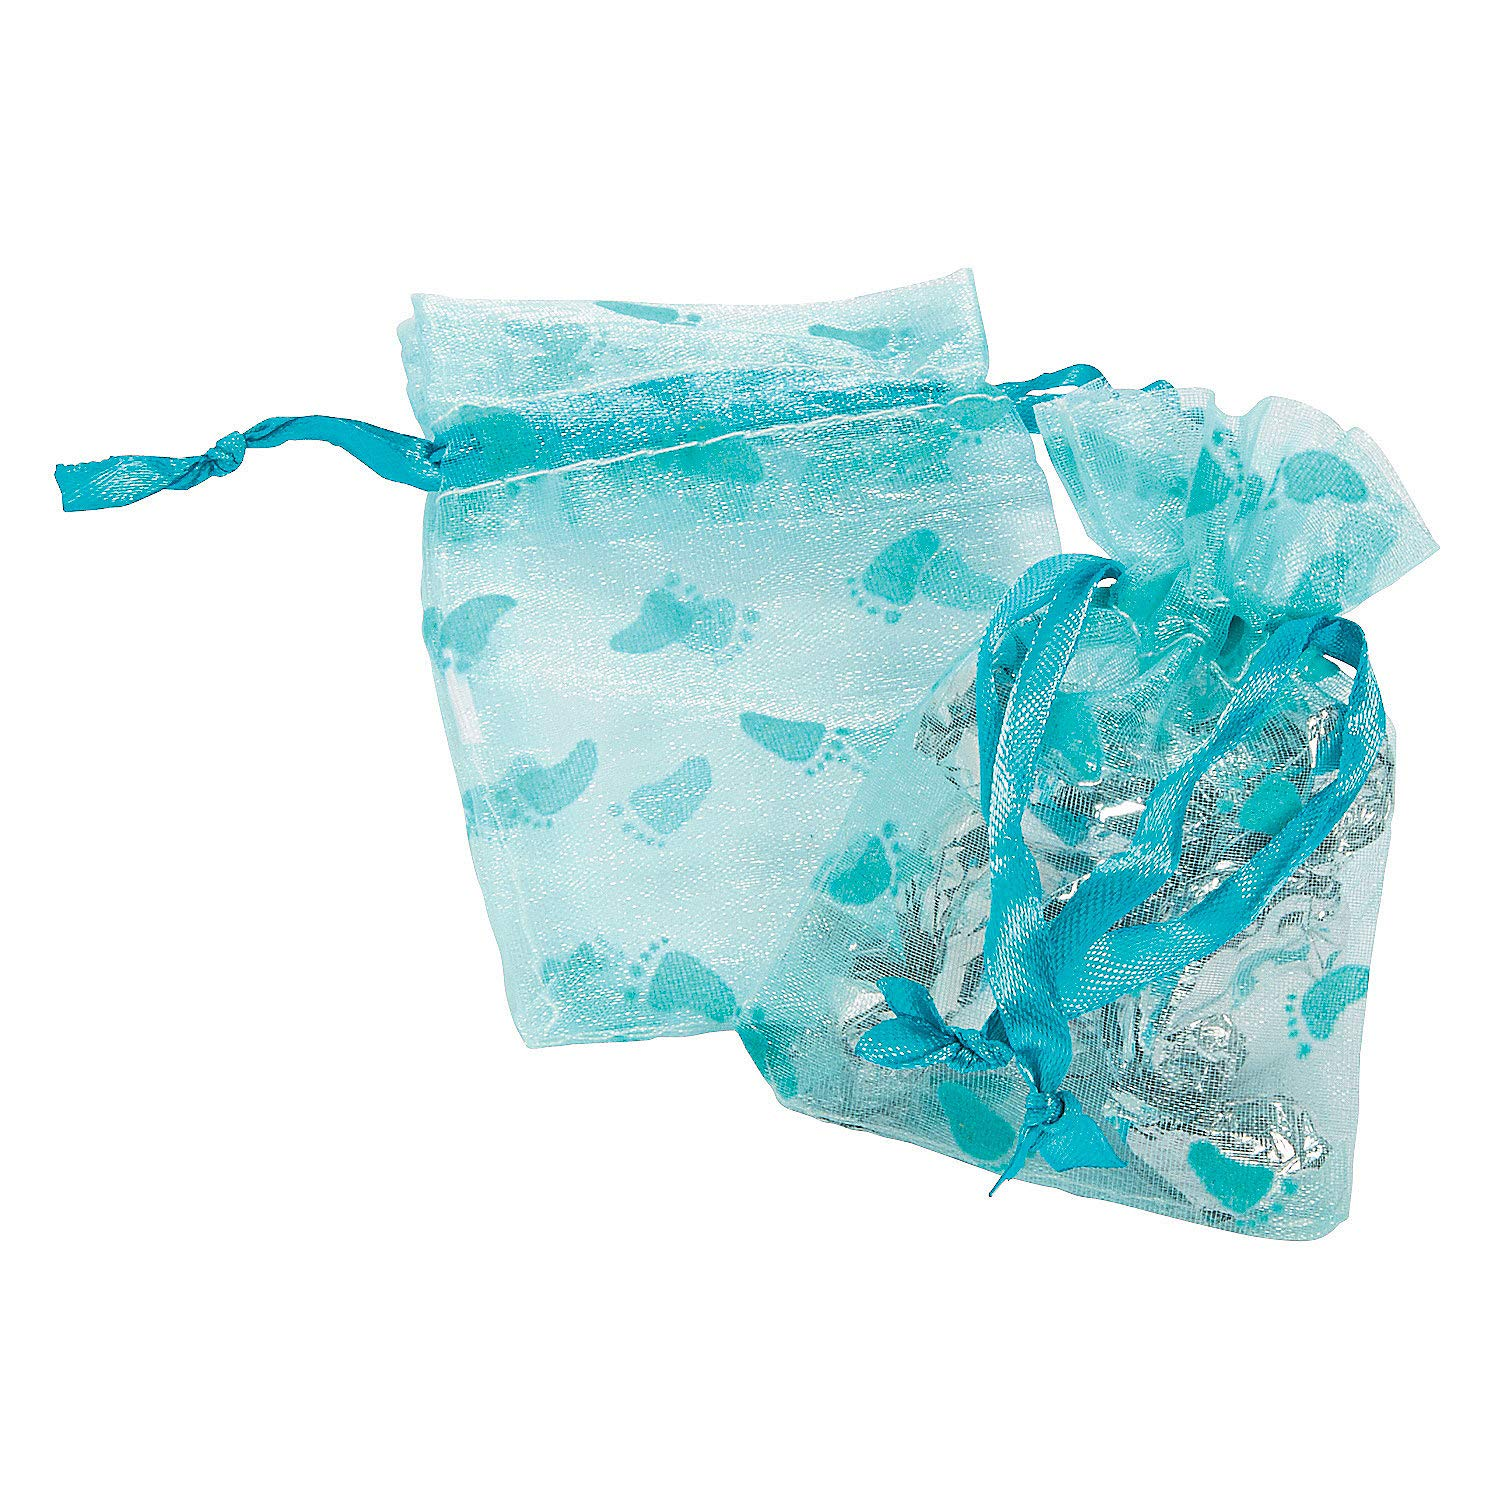 e8d70fac74cf What Size Organza Bags For Votive Candles